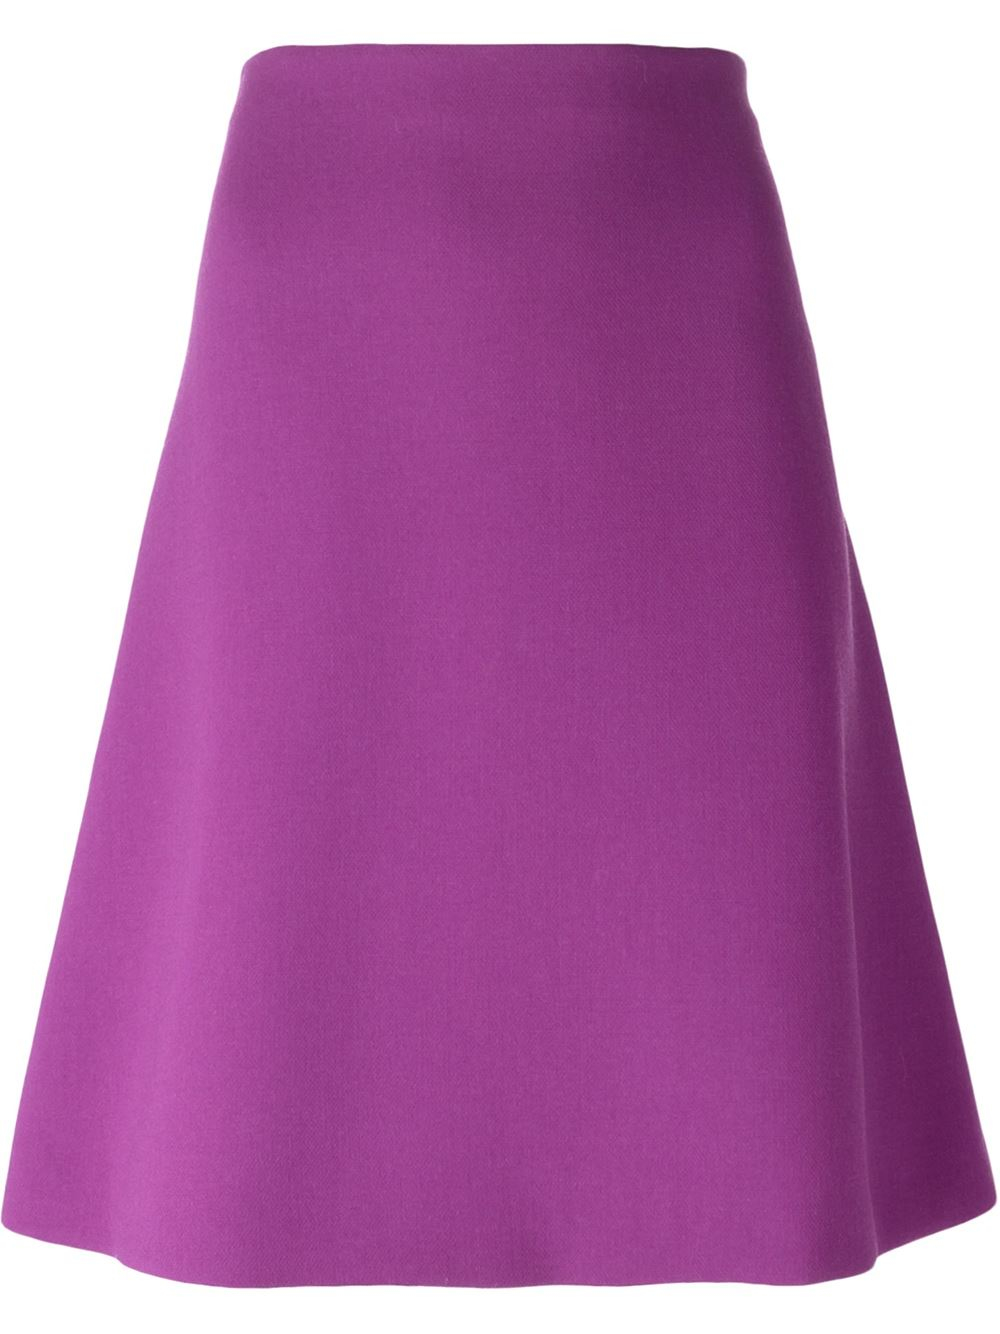 marni classic a line skirt in pink pink purple lyst